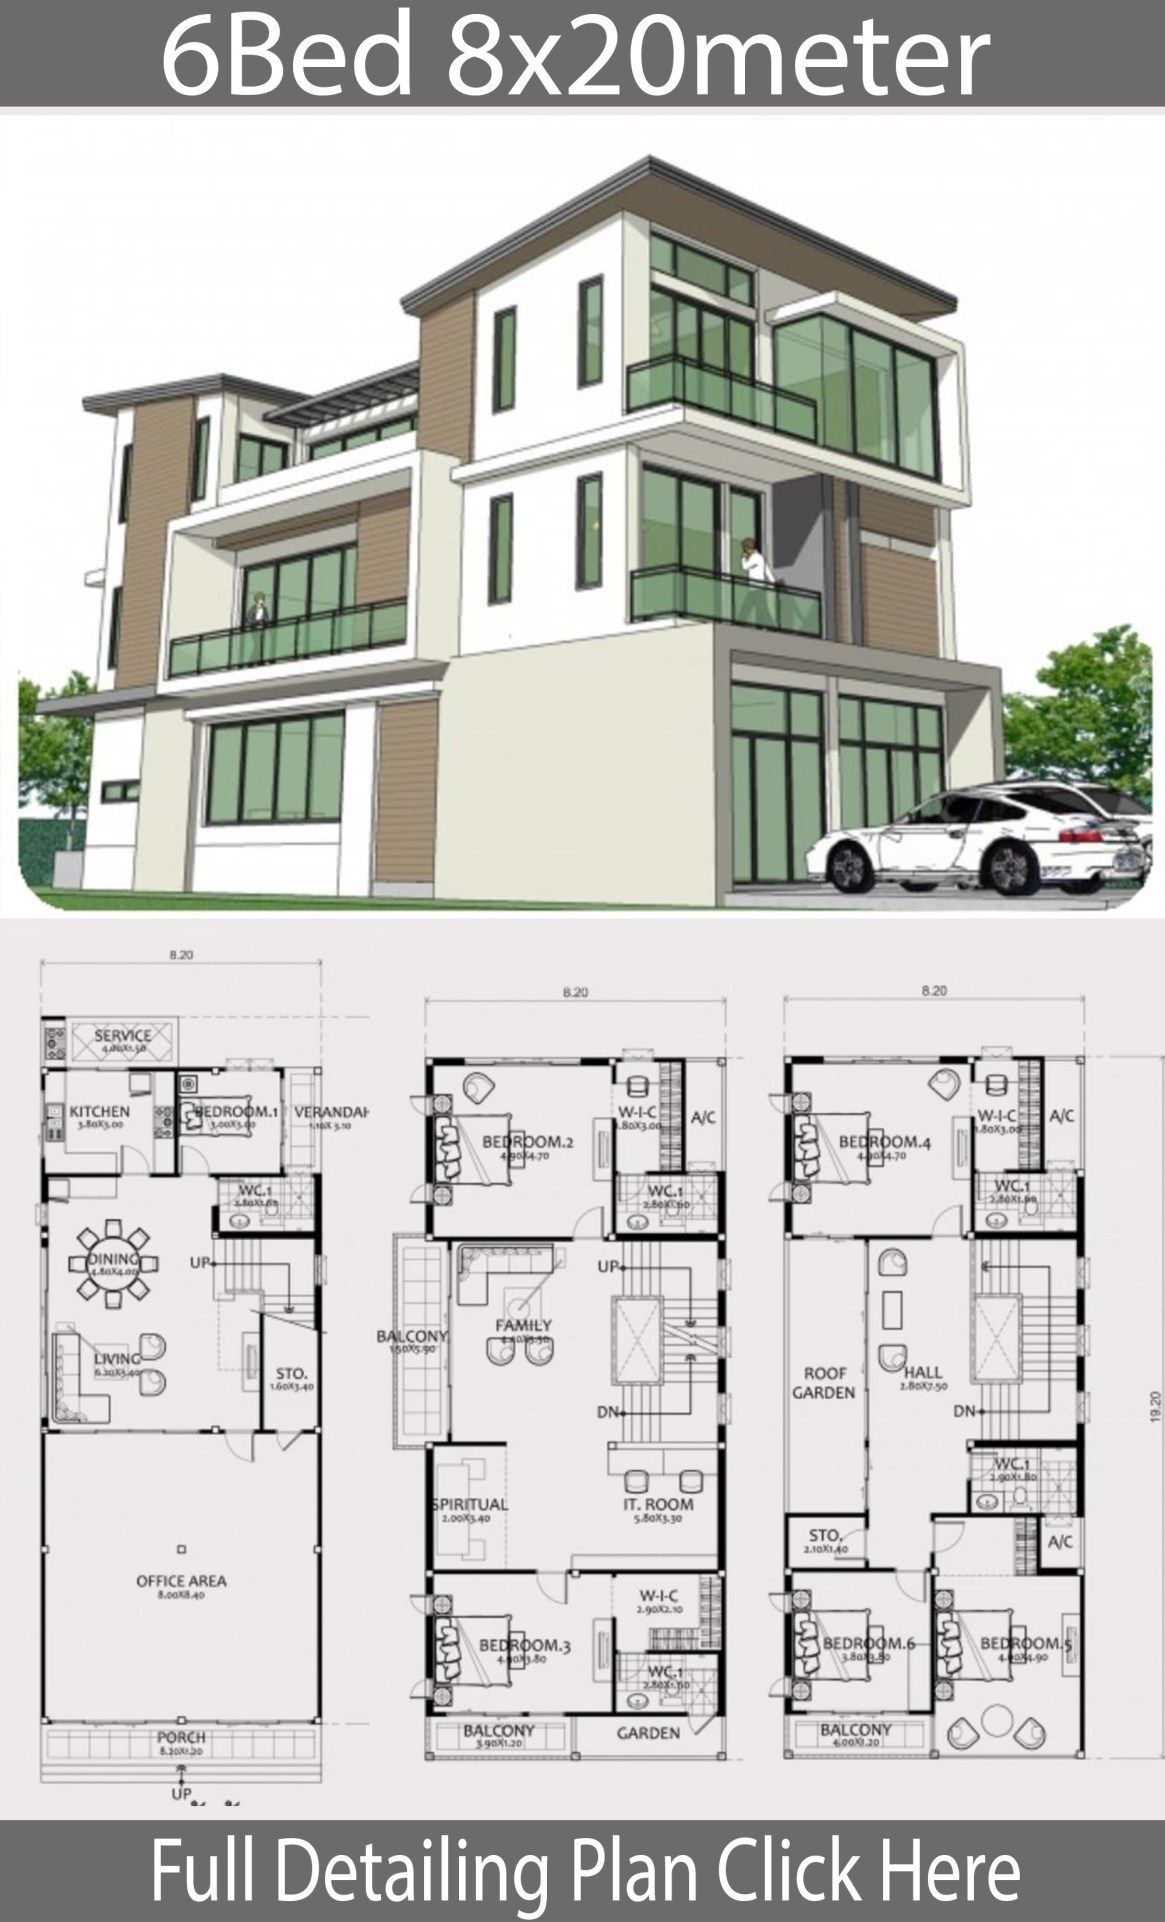 6 Bedroom Home Designs 2020 In 2020 Two Story House Design Modern House Plans House Architecture Design